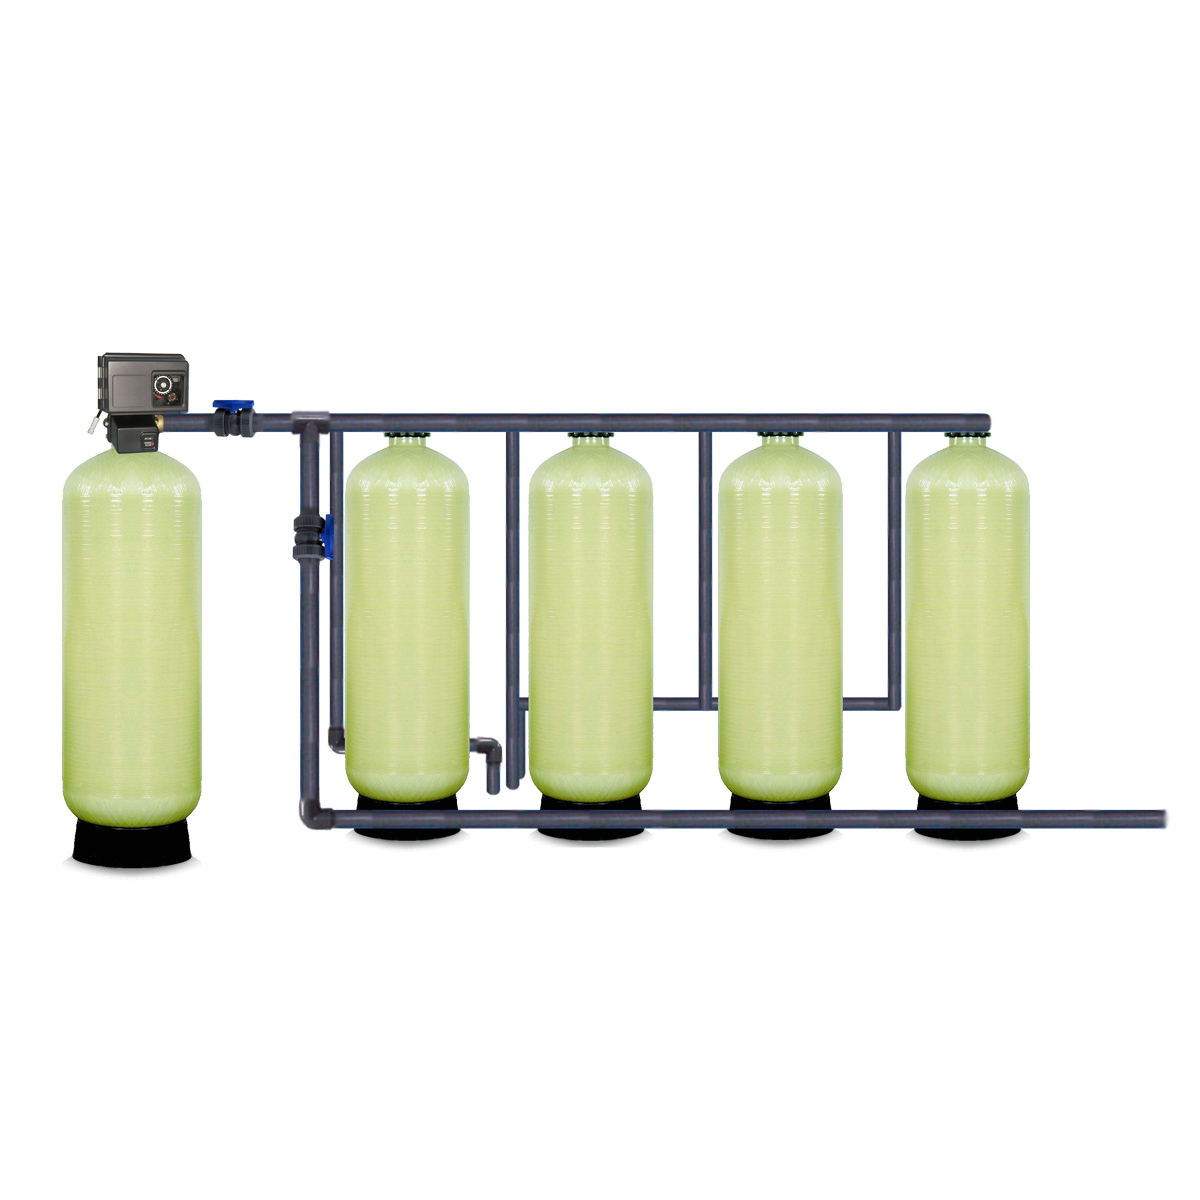 Commerical Iron Filters